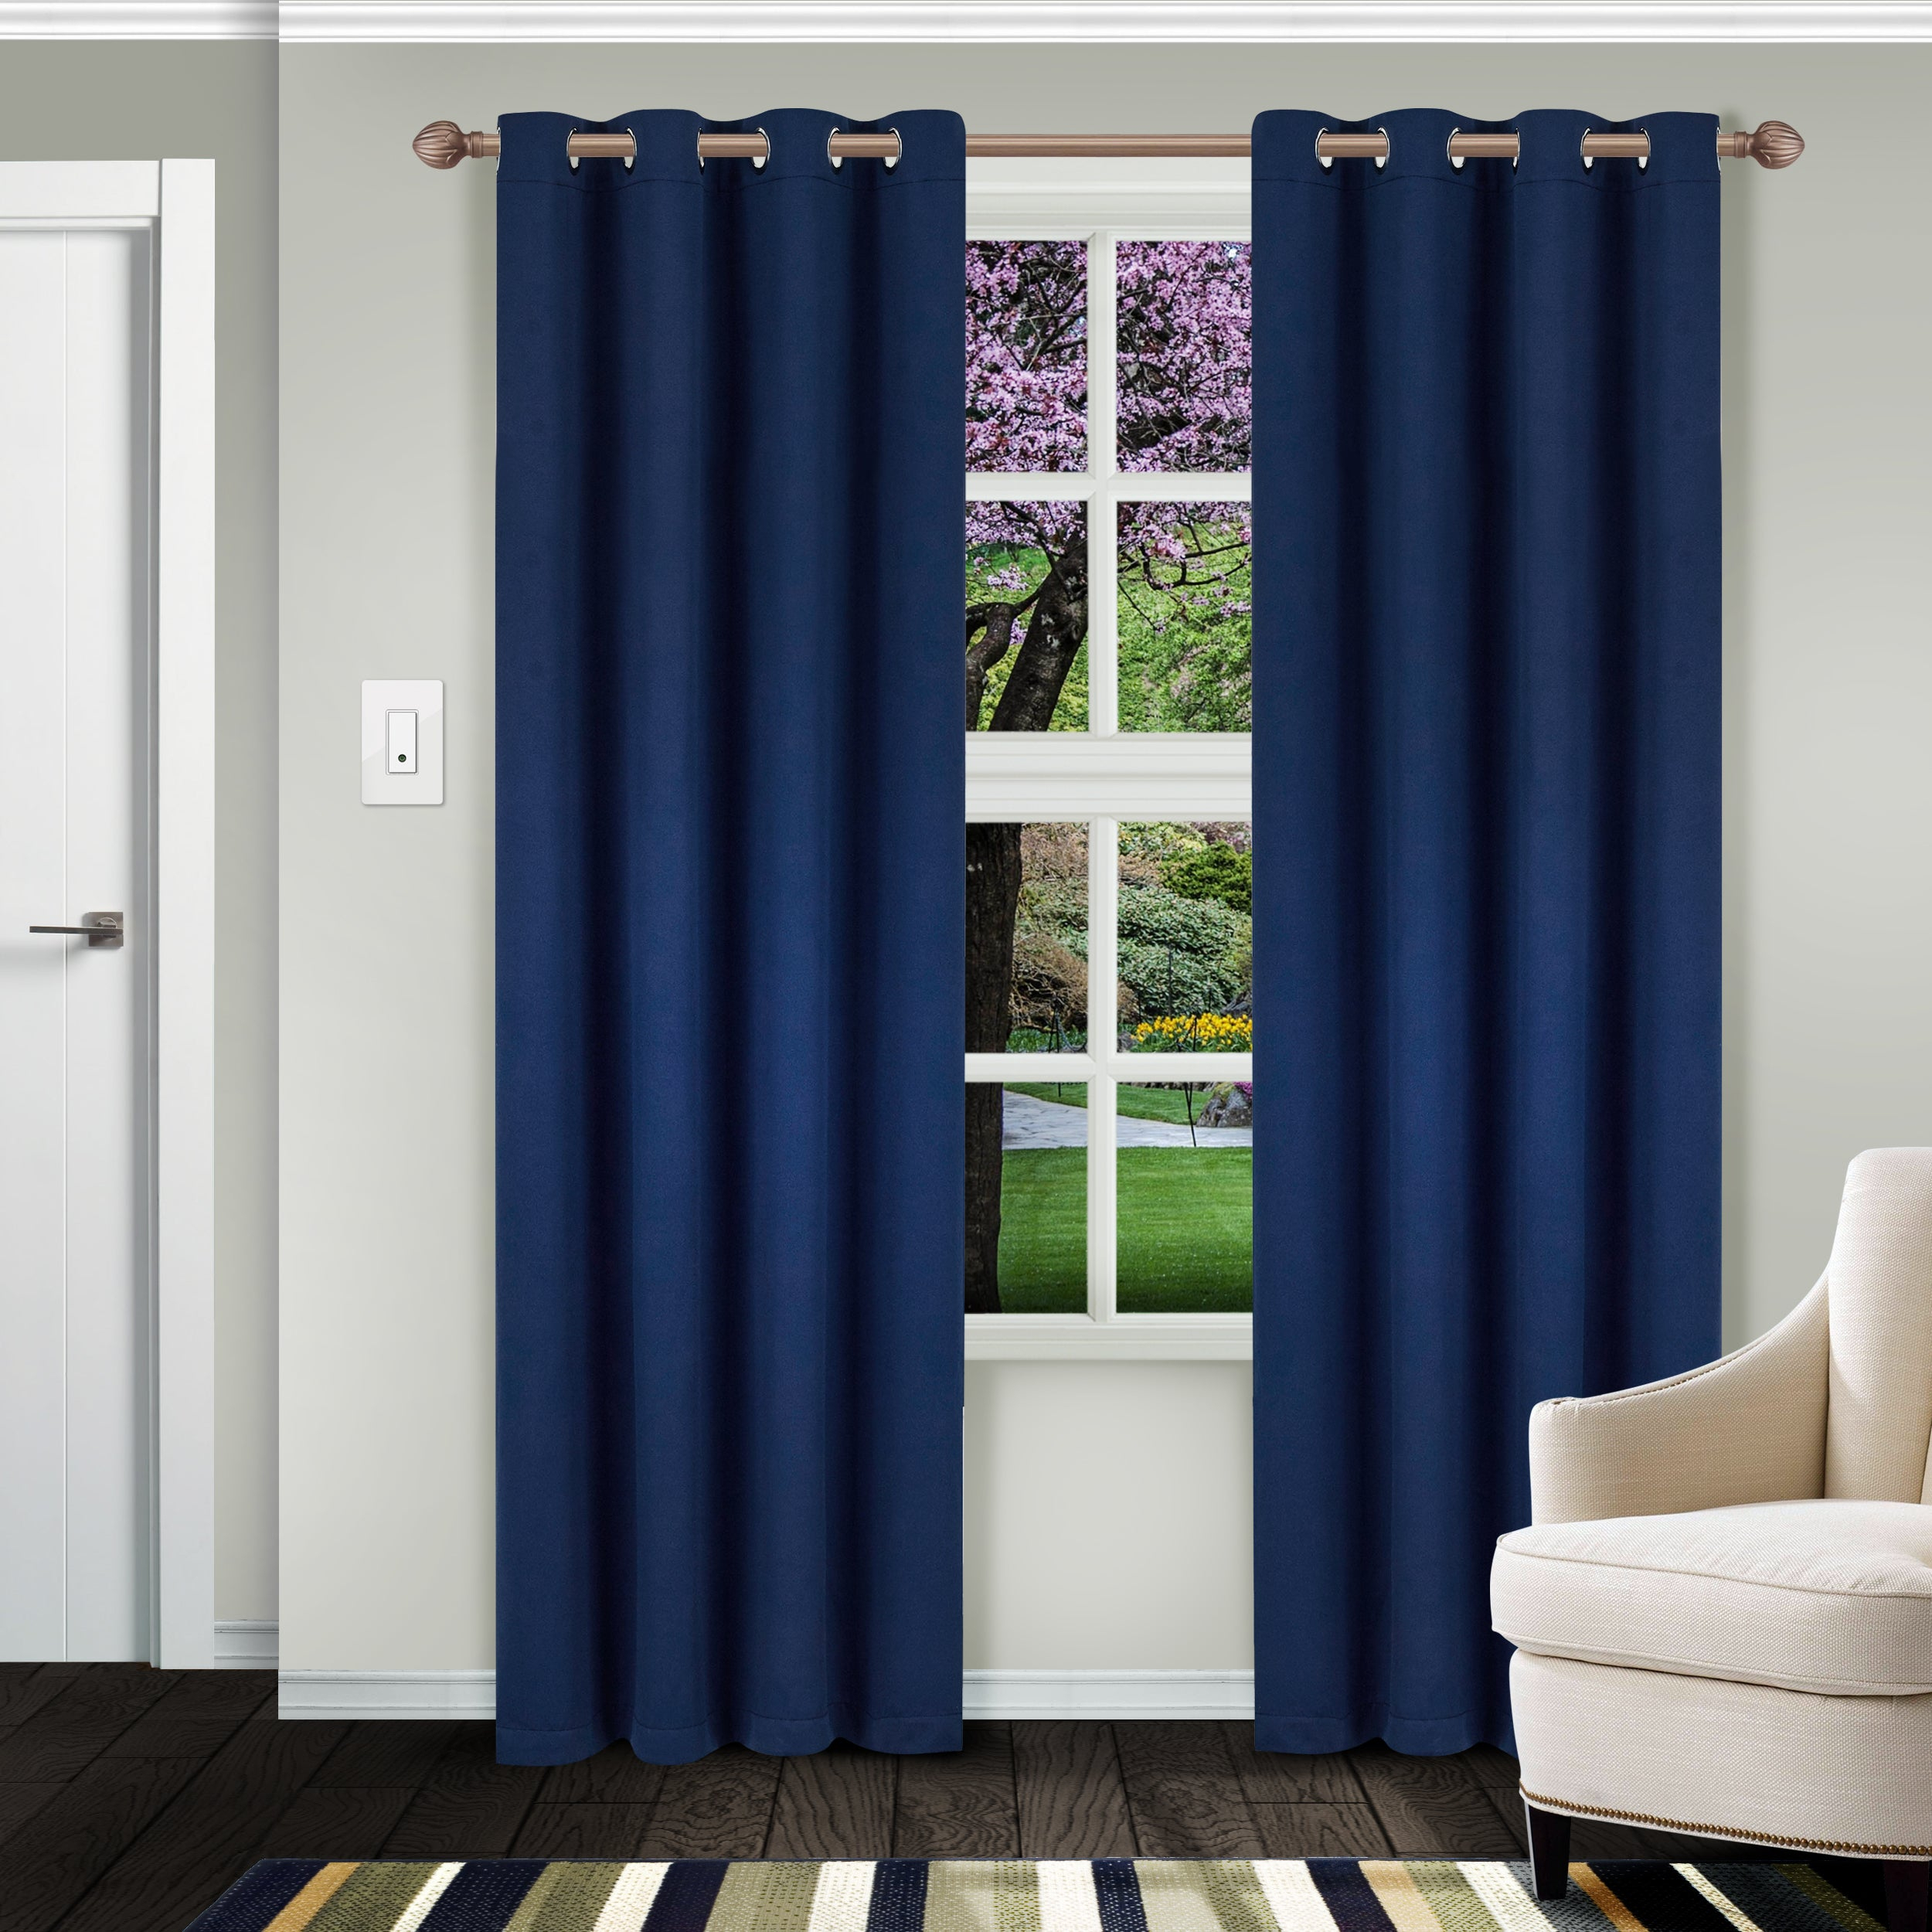 Superior Solid Insulated Thermal Blackout Grommet Curtain Panel Pair Within Solid Grommet Top Curtain Panel Pairs (View 28 of 30)